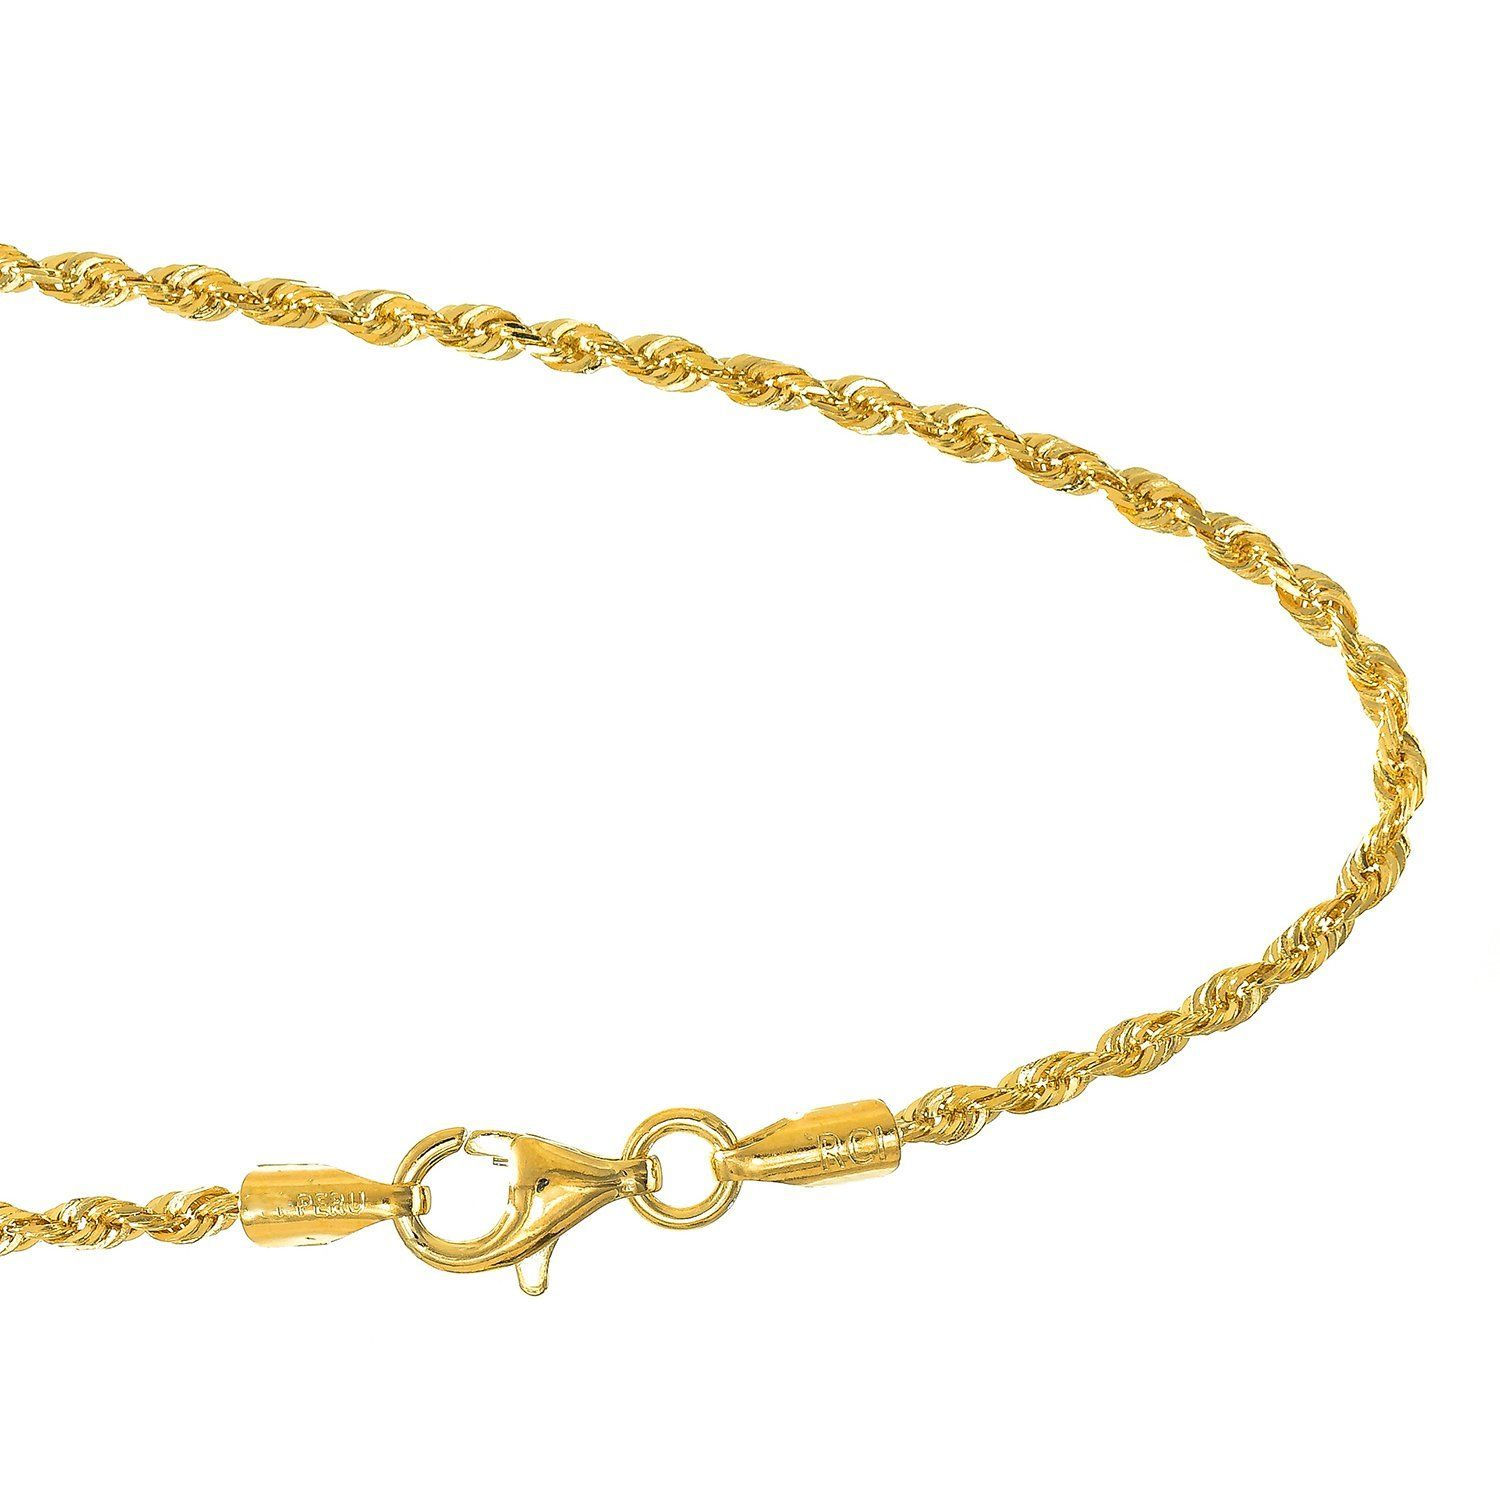 royal jewels product by category bracelet ankle karat chain rope anklet yellow gold archives elle anklets